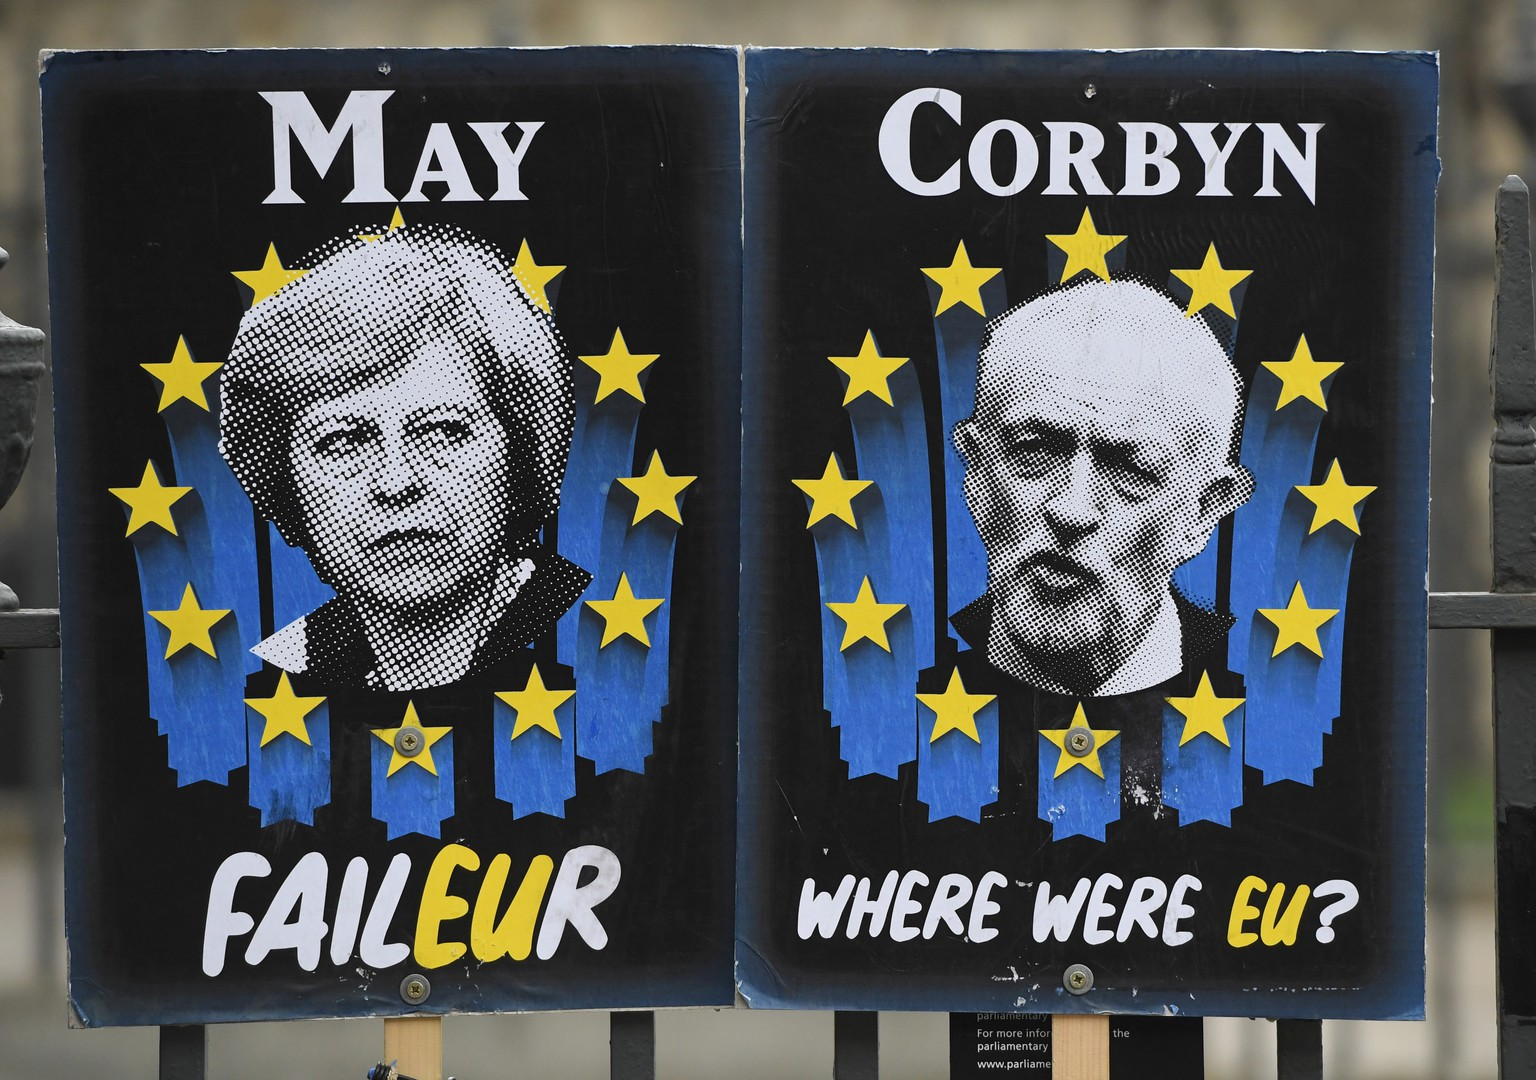 epa07482549 Posters mocking British politicians outside the Houses of Parliament in Westminster, central London, Britain, 03 April 2019. Reports state that British Prime Minister Theresa May is expected to meet Labour opposition leader Jeremy Corbyn later in the day looking for a way to to break the Brexit deadlock. May also is to ask the EU for an extension to the Brexit deadline.  EPA/FACUNDO ARRIZABALAGA